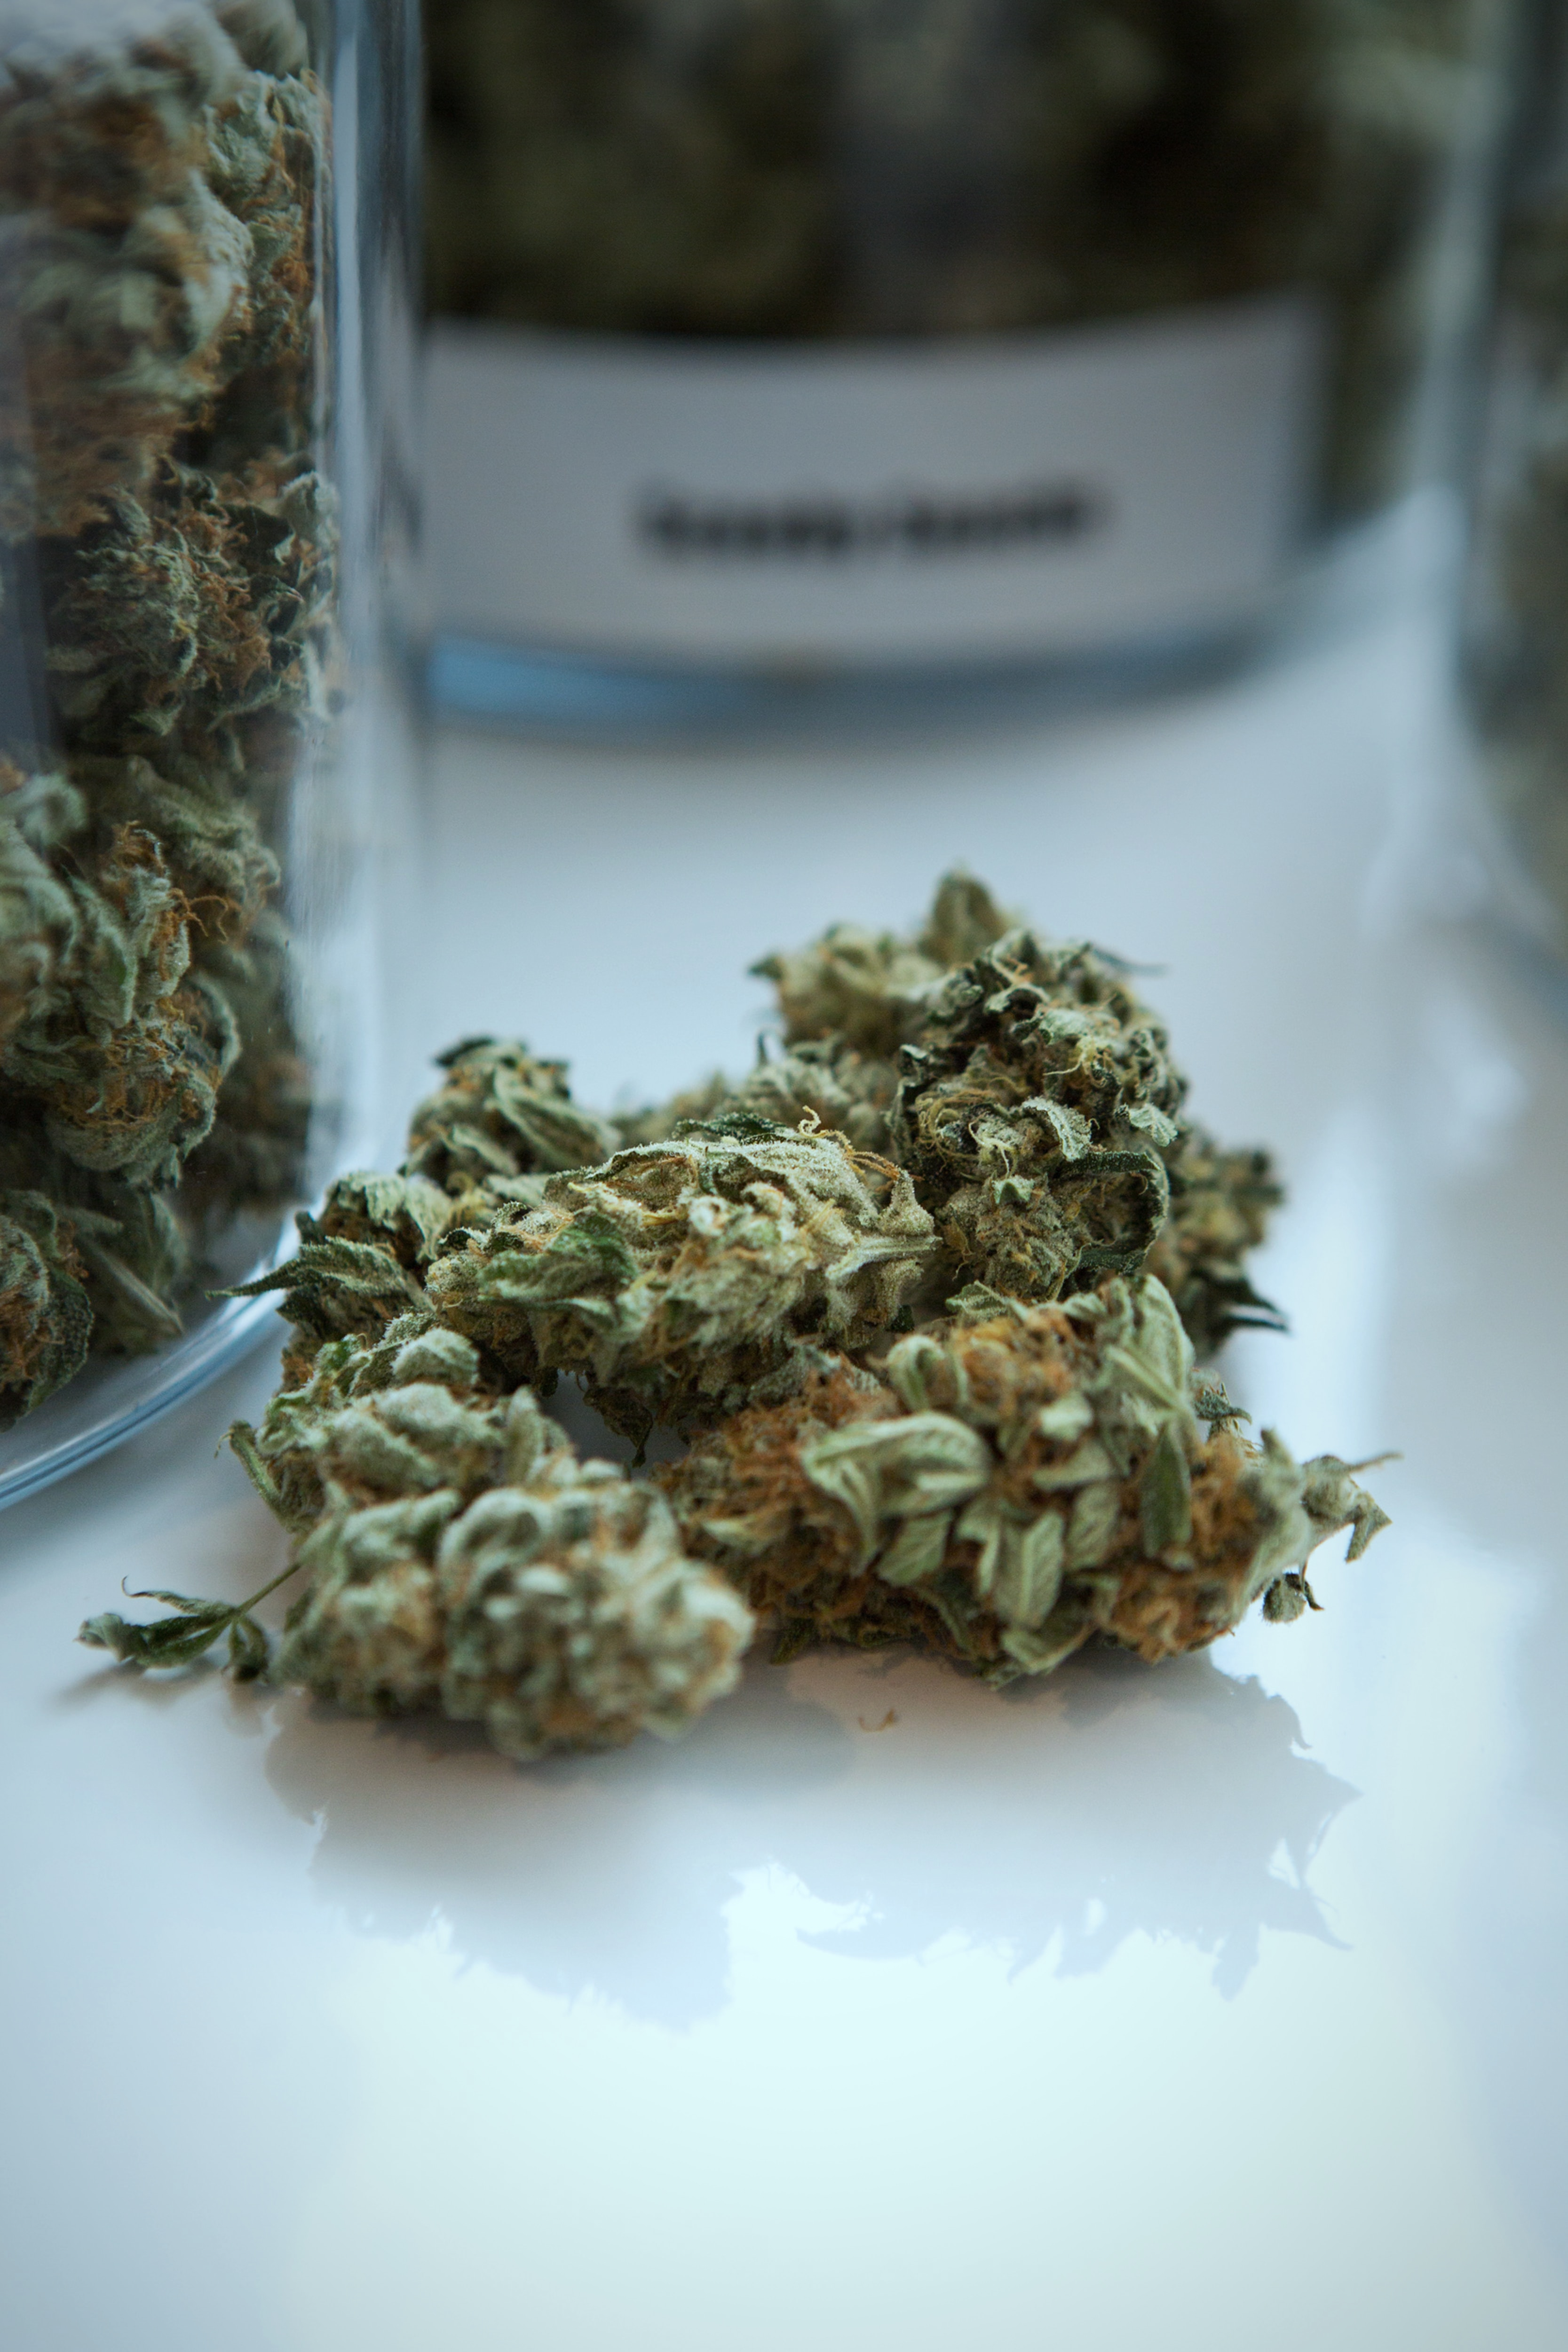 A photo of cannabis buds on a white counter beside jars of product for sale.